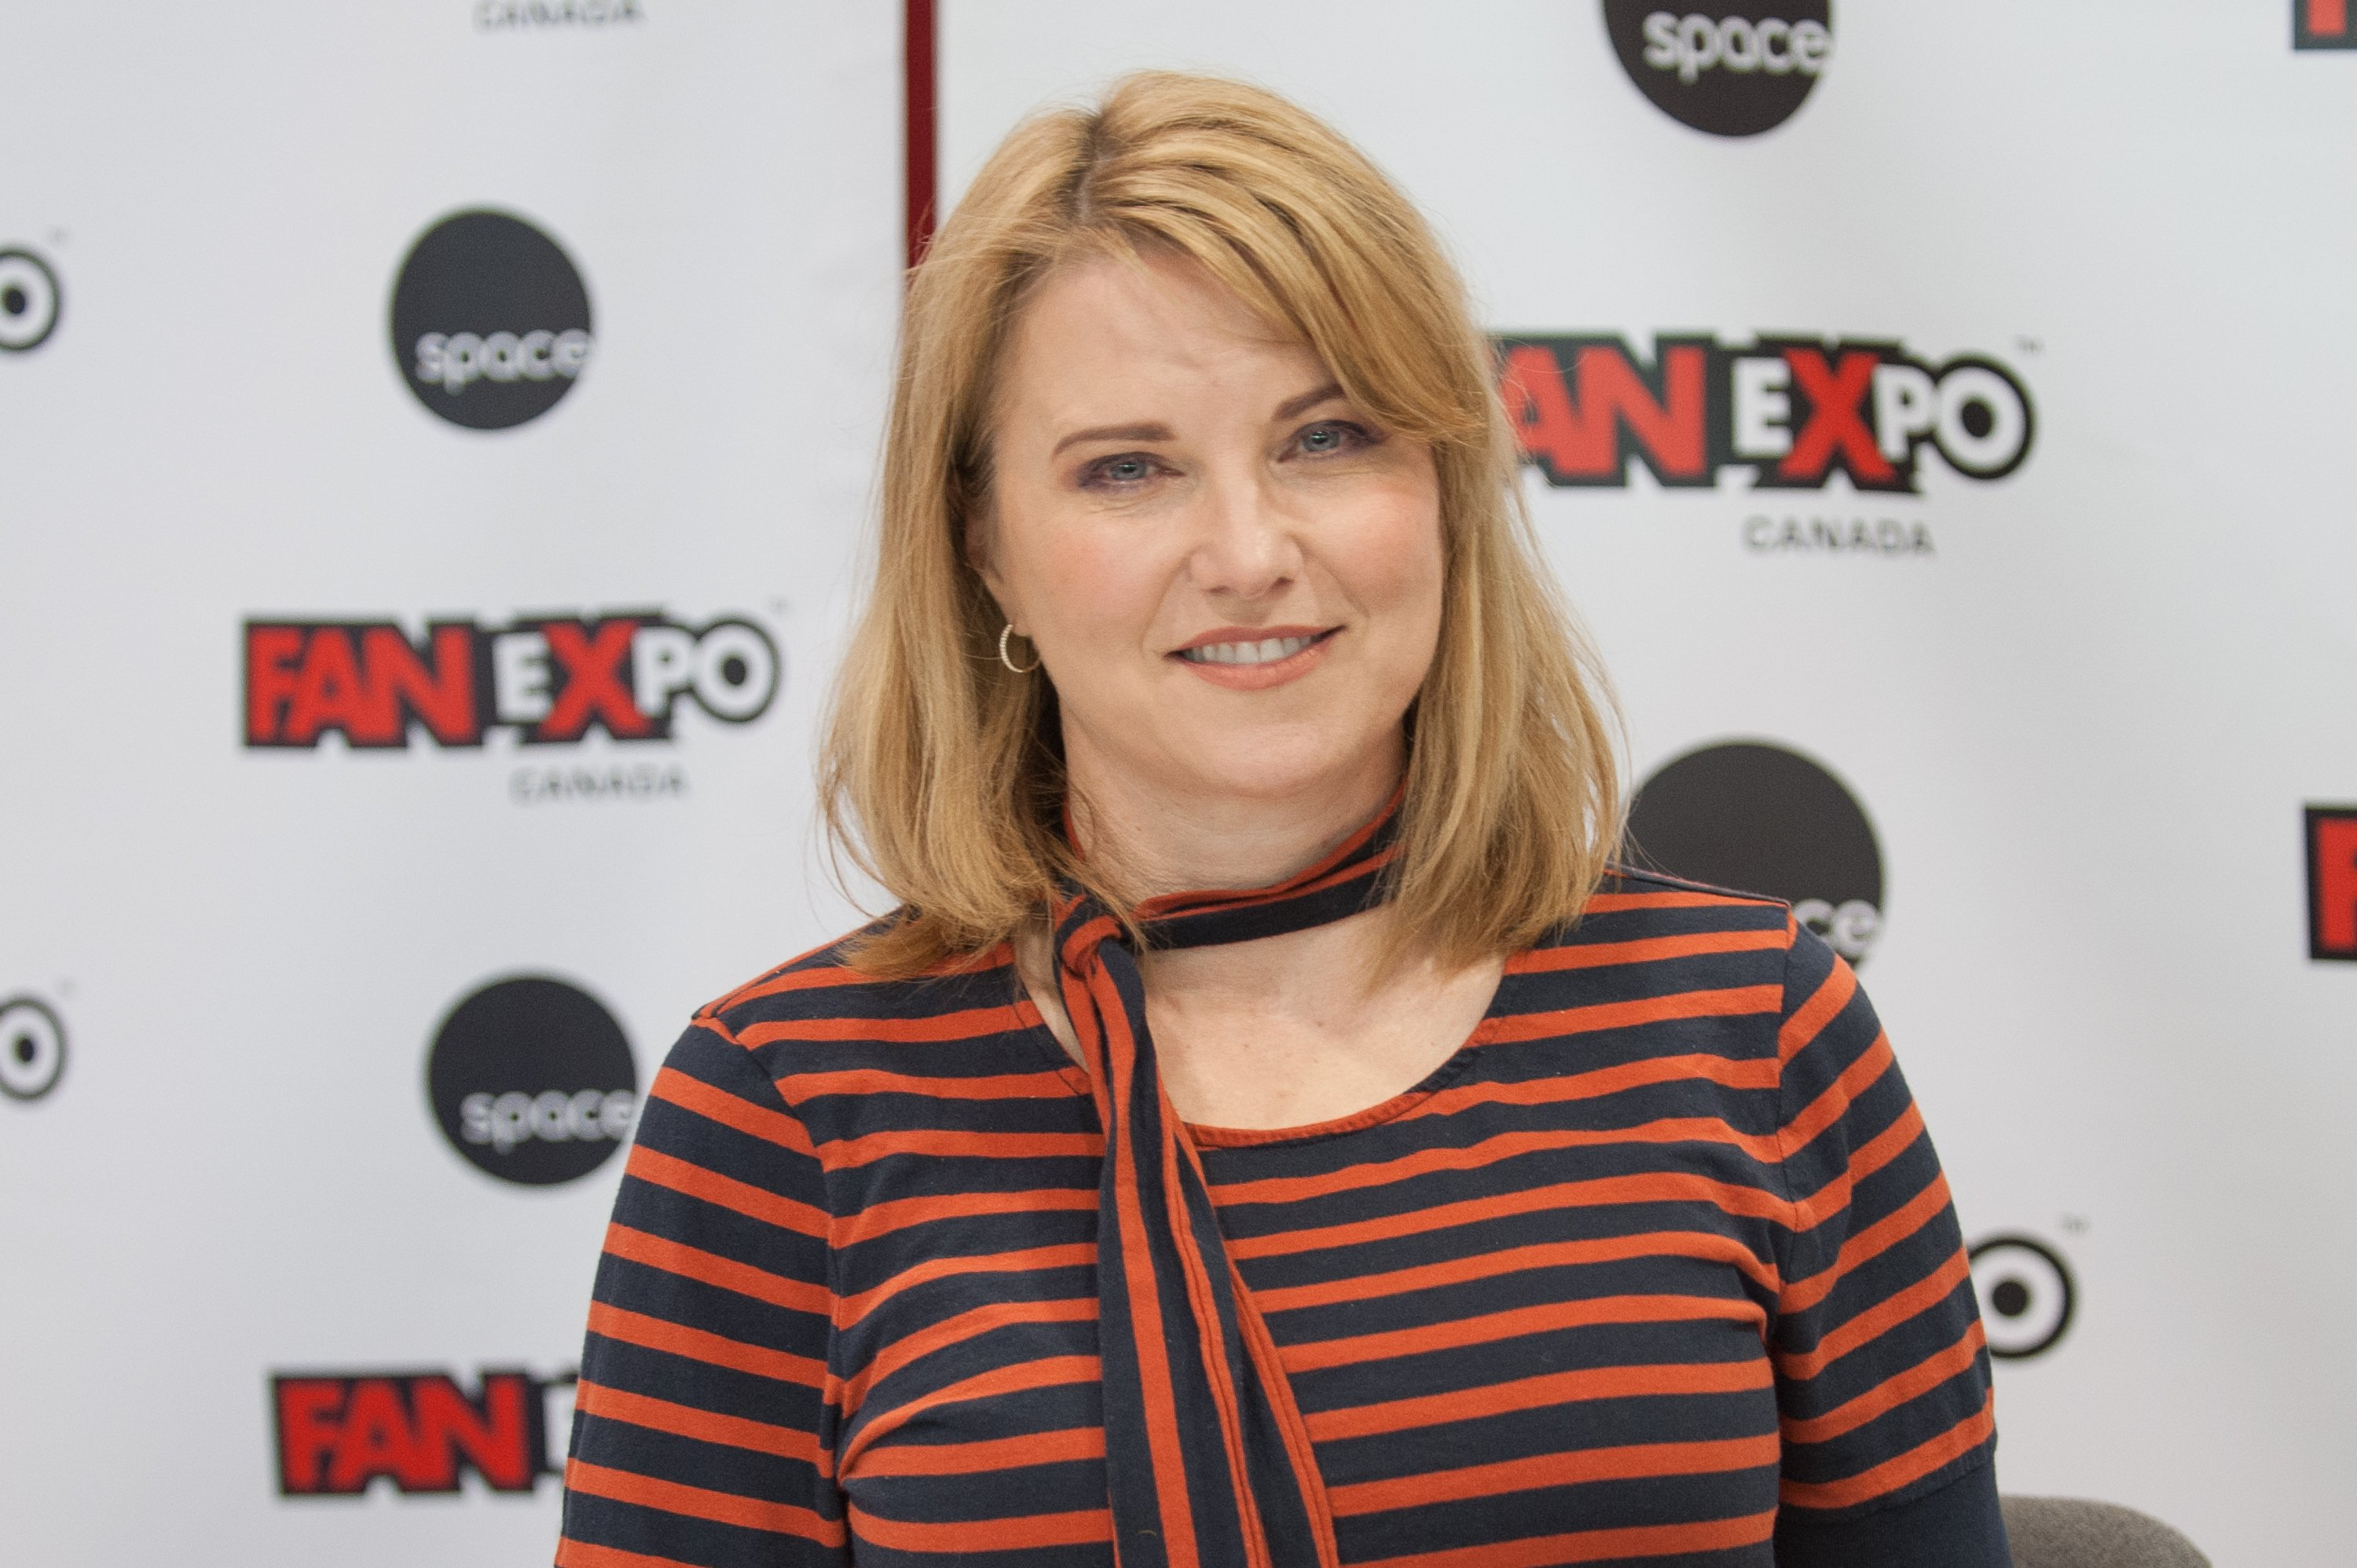 Lucy Lawless attends the 2018 Fan Expo Canada, on September 1, 2018 in Toronto, Canada. | Source: Getty Images.